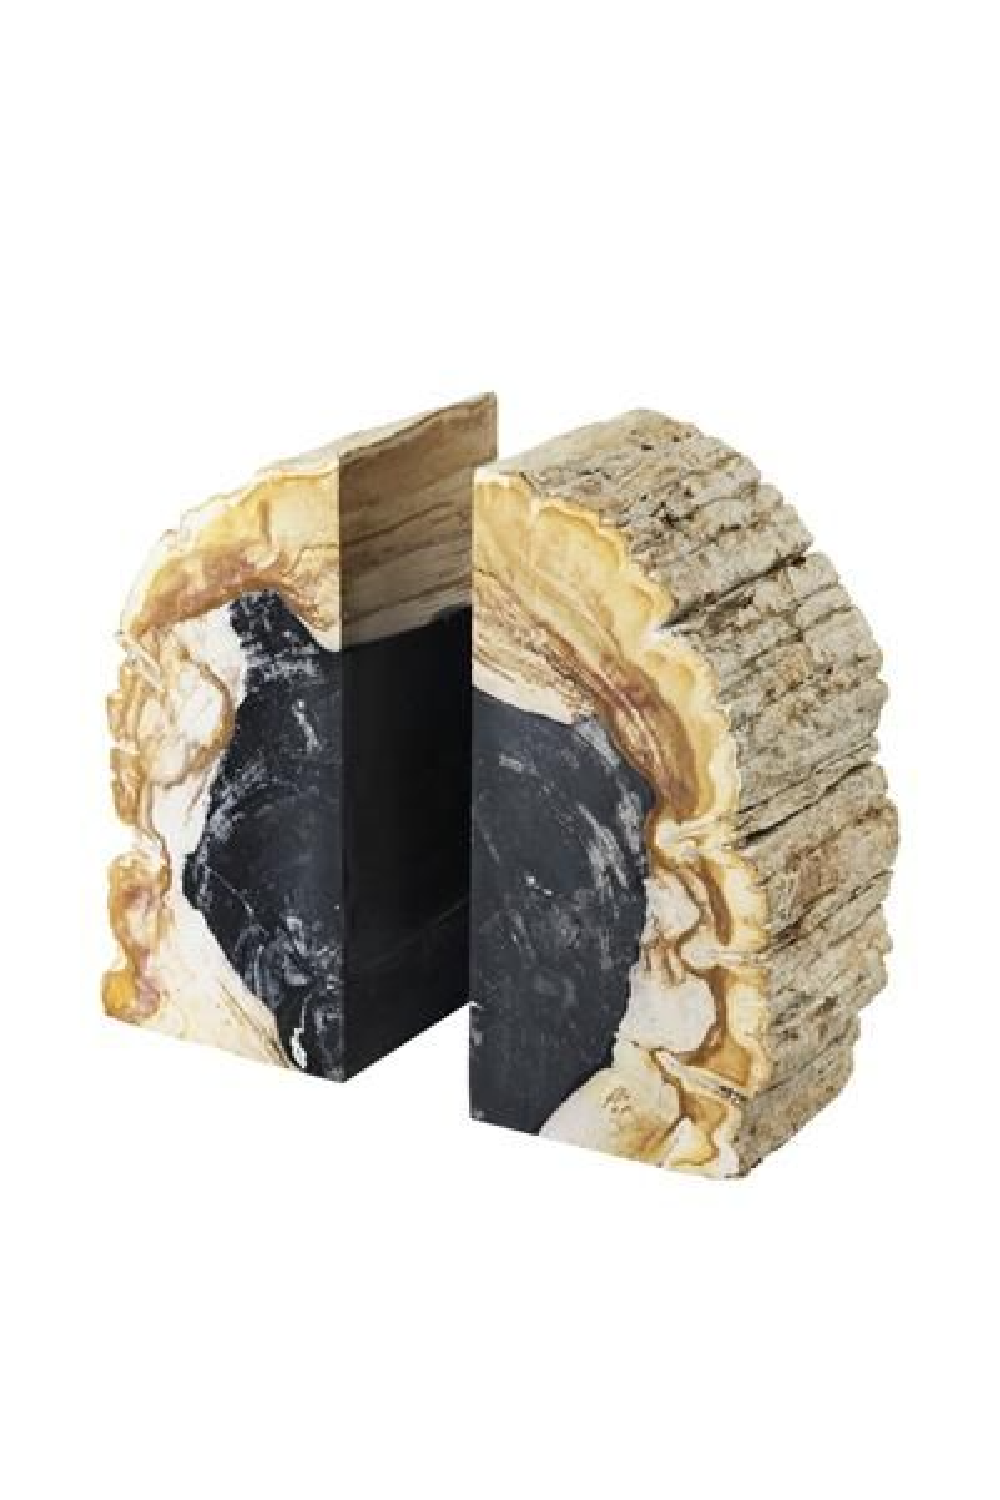 Petrified Wood Bookends | Eichholtz | #1 Eichholtz Retailer